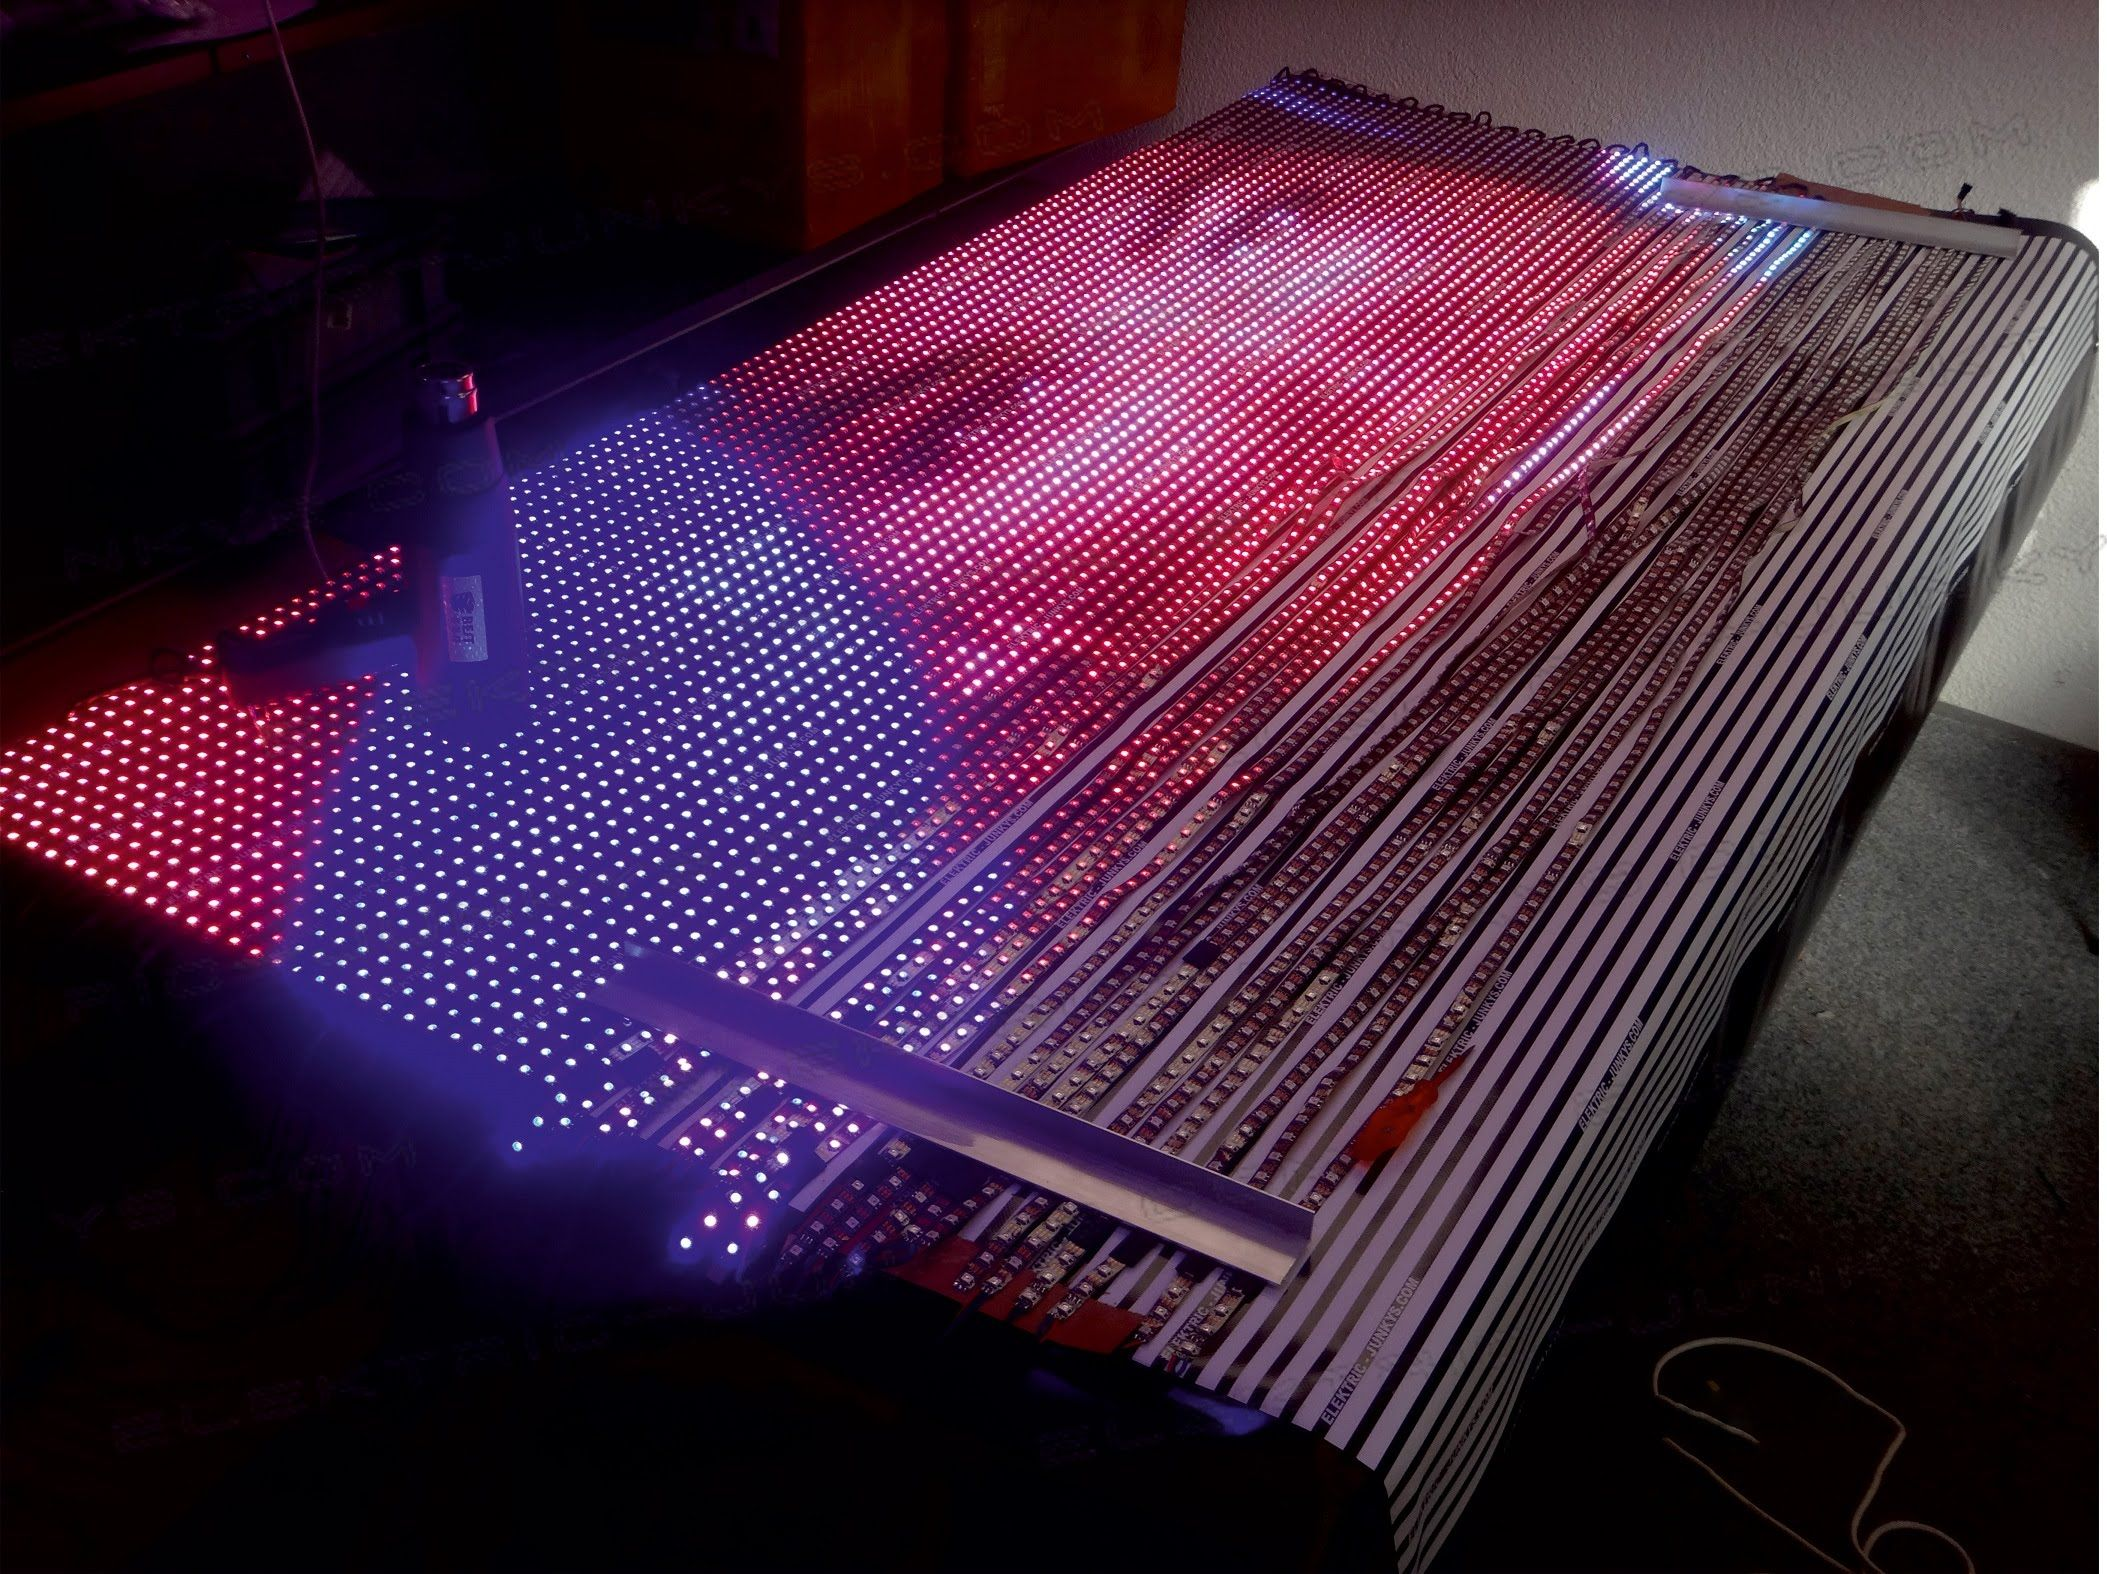 Diy Led Wall Display As Far As My Math Goes This Is Cheaper Than